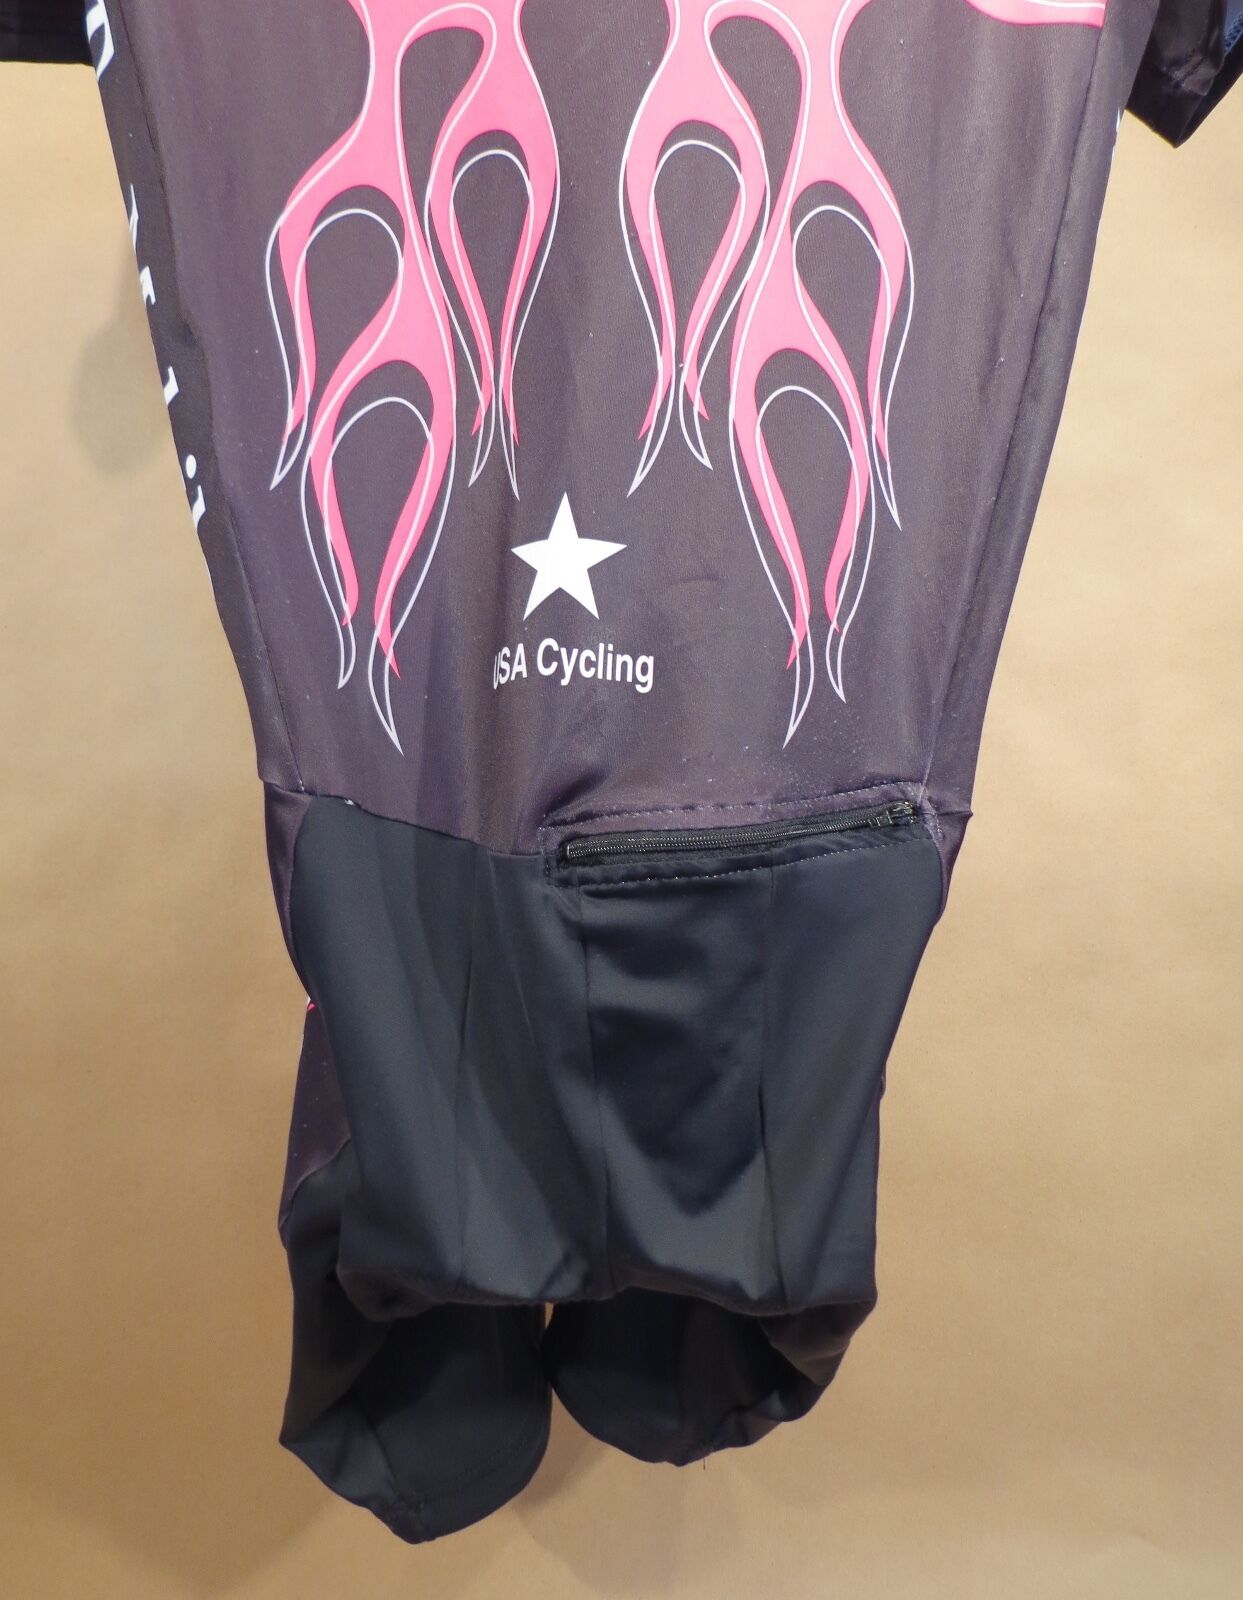 T-Mobile Bicycle Skinsuit • Biemme • S / 2 •  Made in  • • SRM • USA Cycling 057b0a